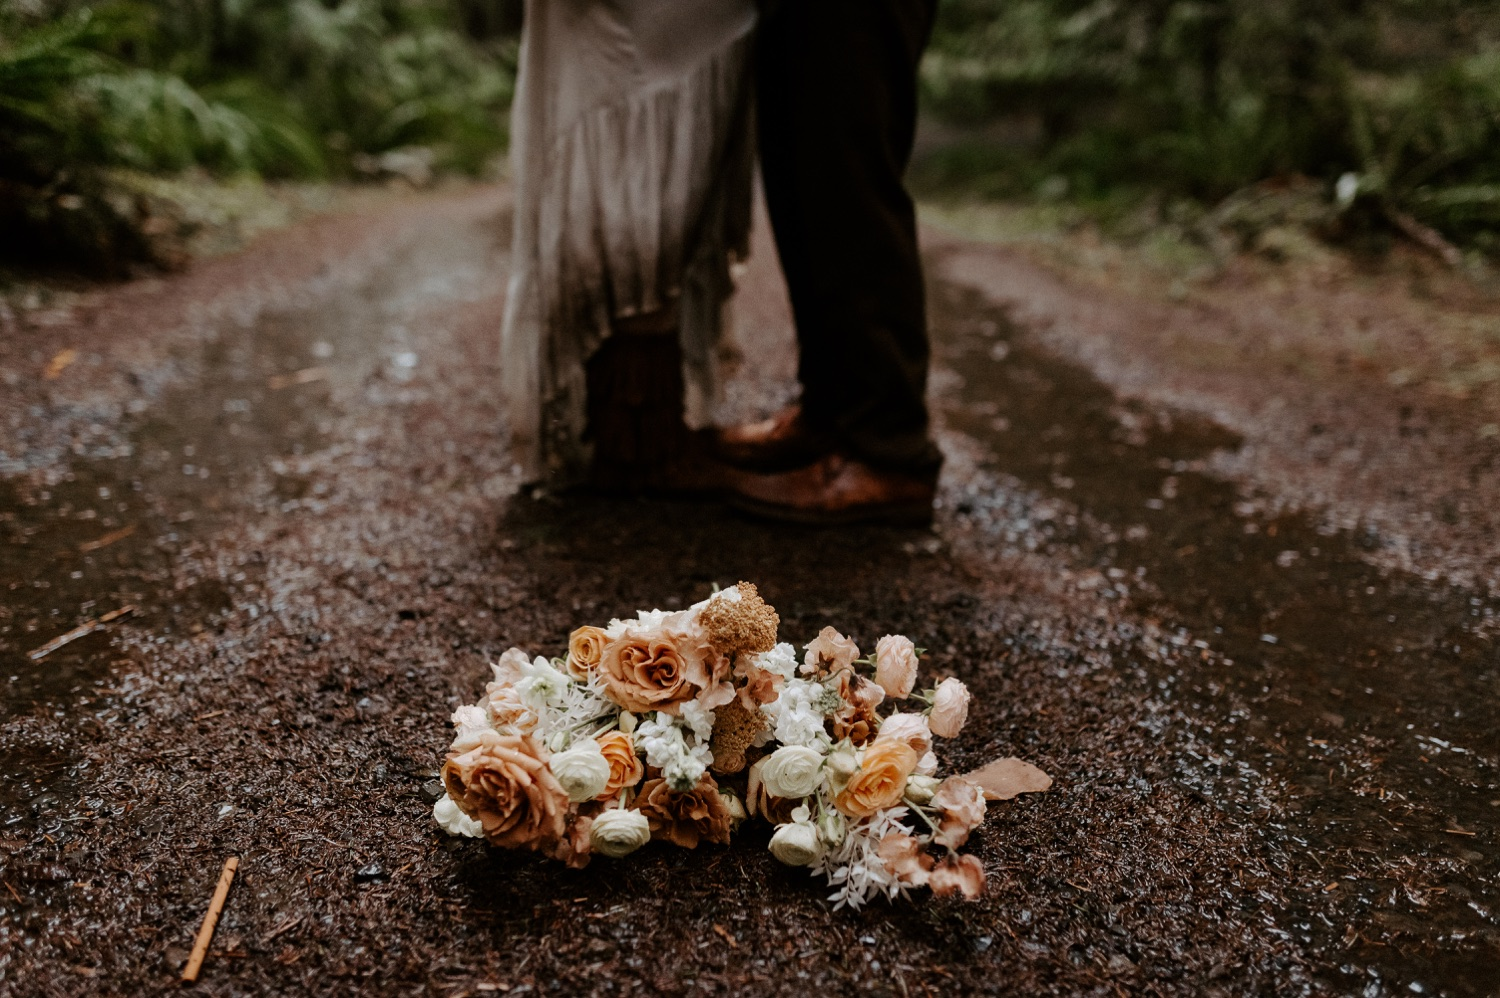 The Woodlands House Sandy Oregon Elopement Portland Elopement Photographer PNW Adventurous Elopement Anais Possamai Photography 032